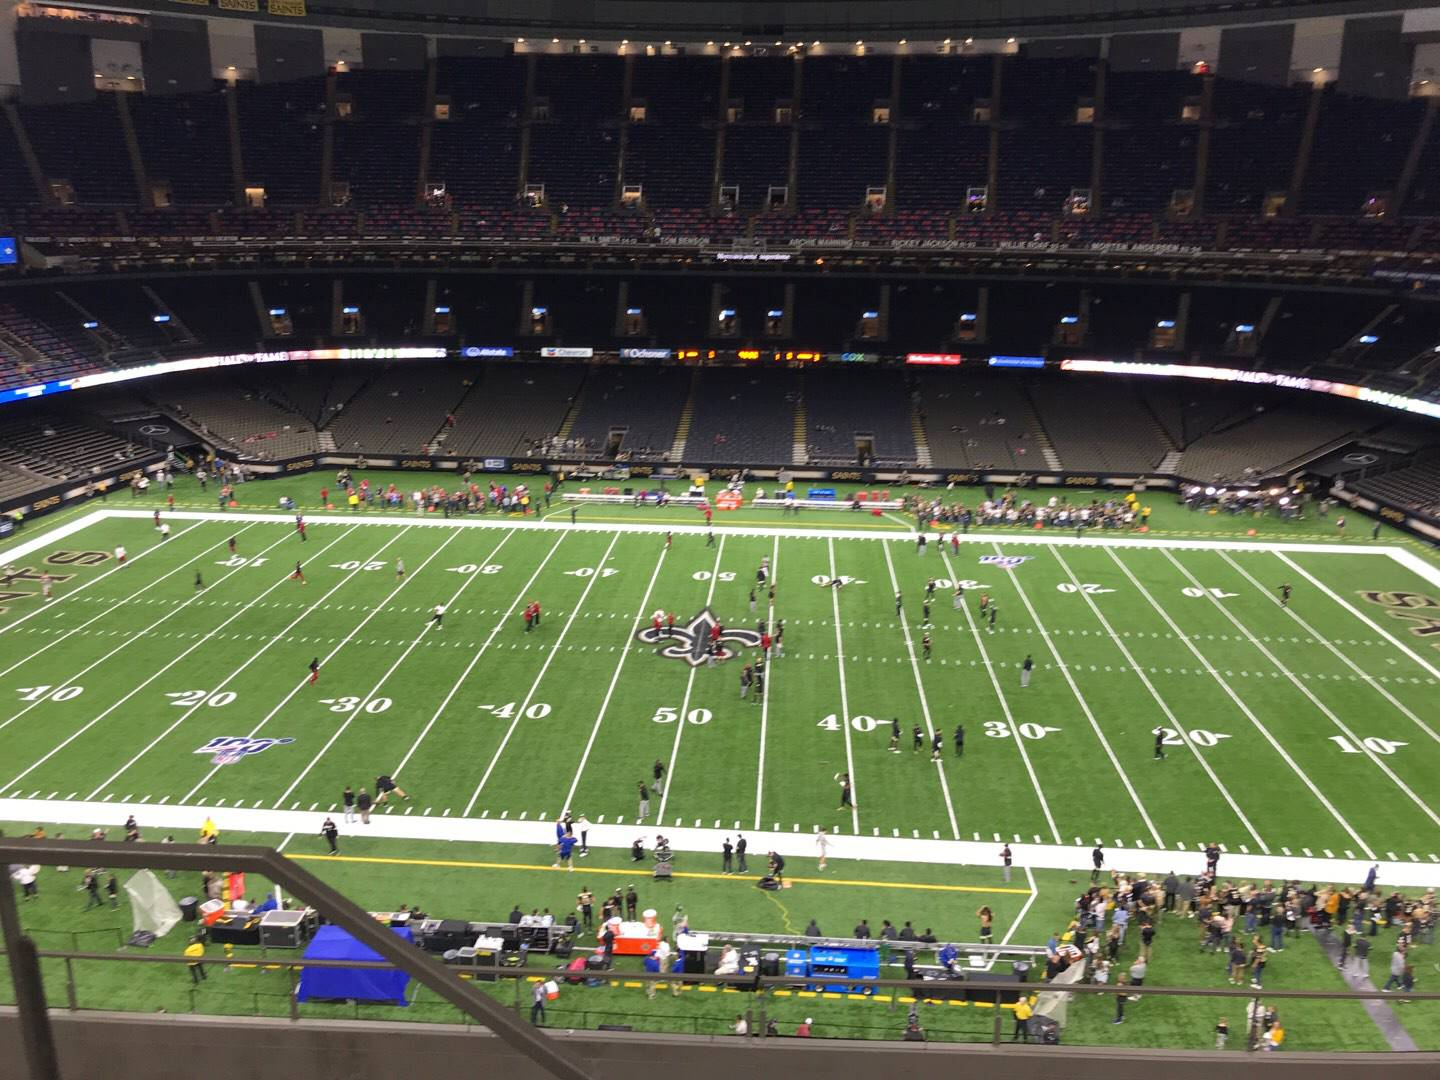 Mercedes-Benz Superdome Section 639 Row 8 Seat 21